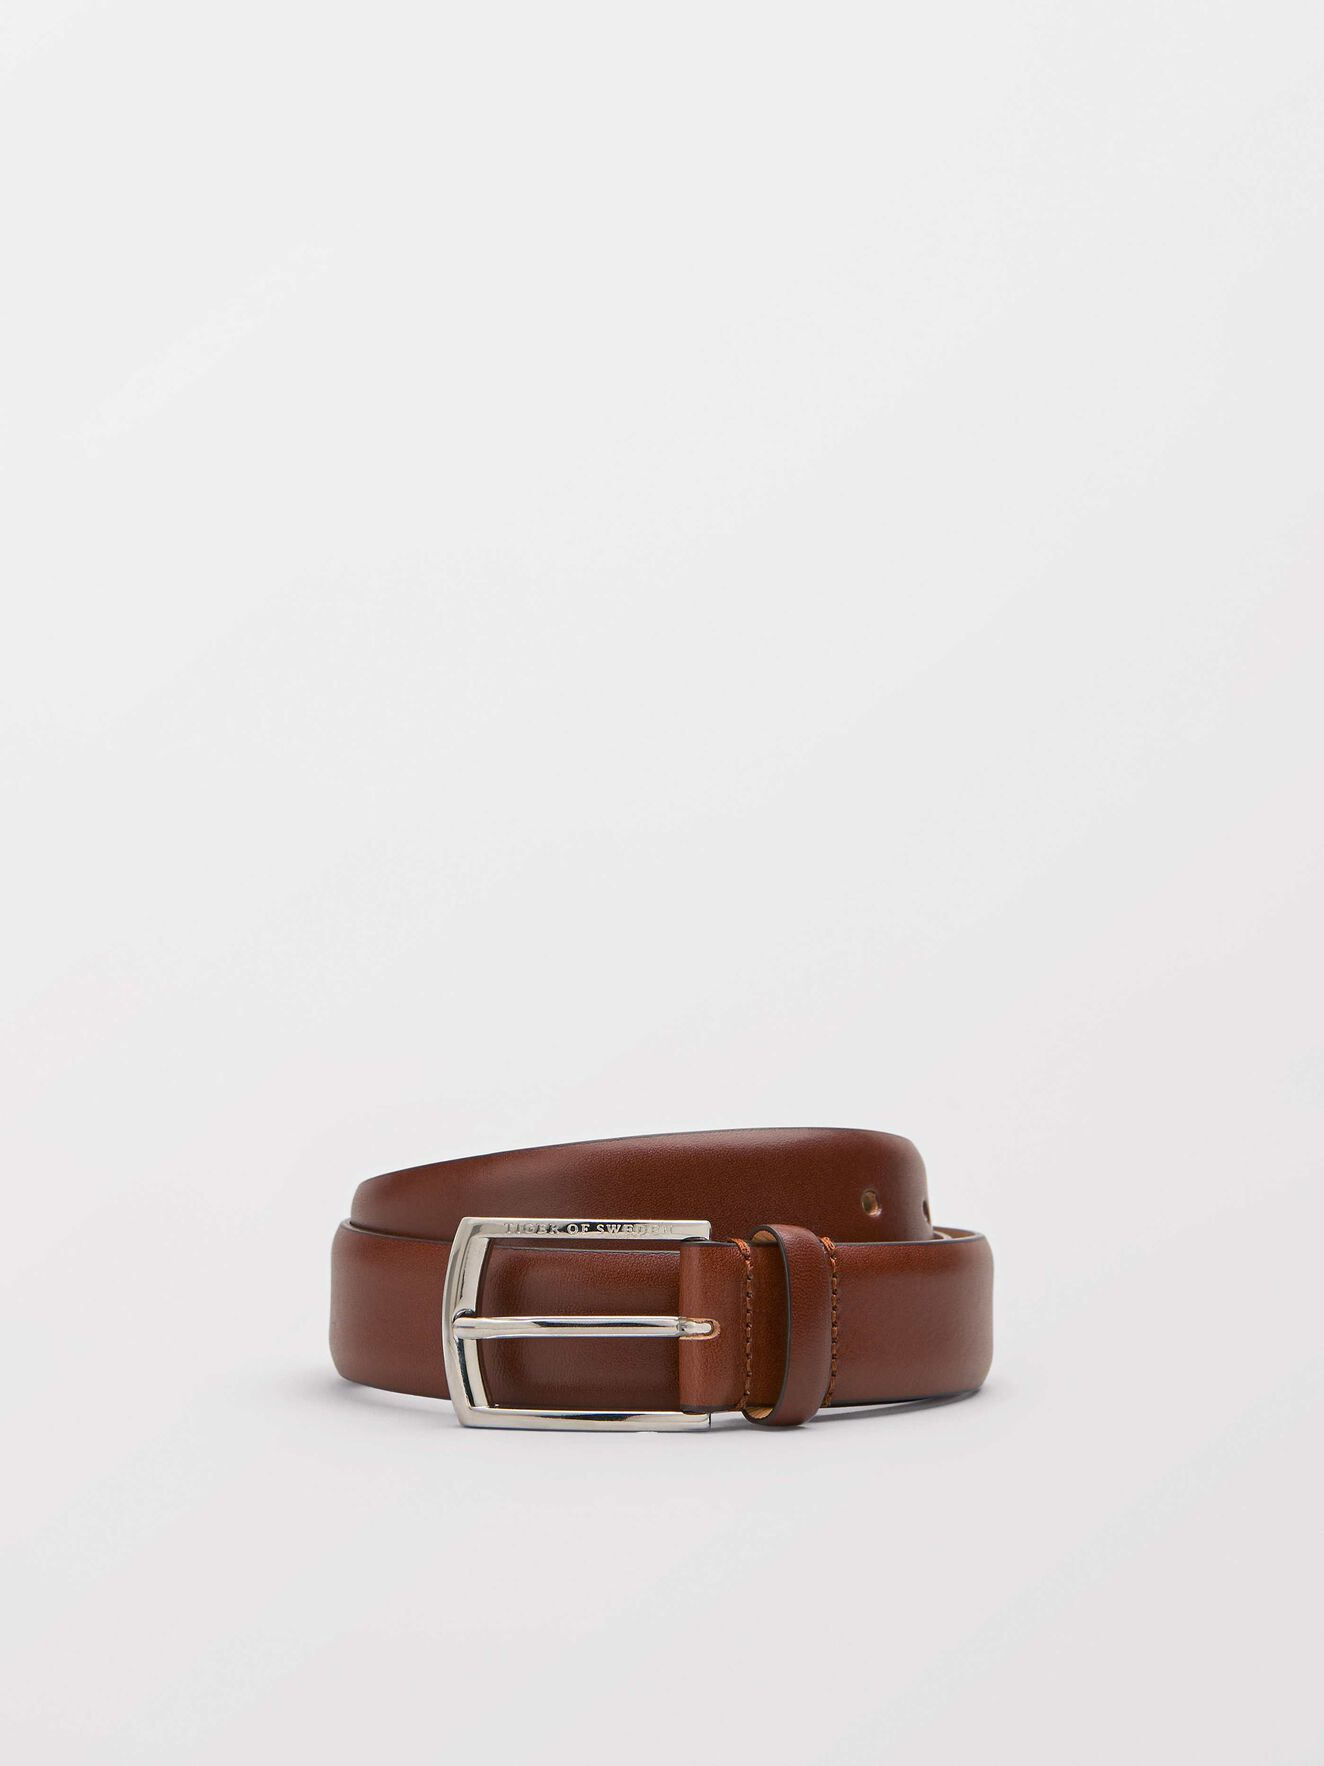 Asenby Belt in Cognac from Tiger of Sweden